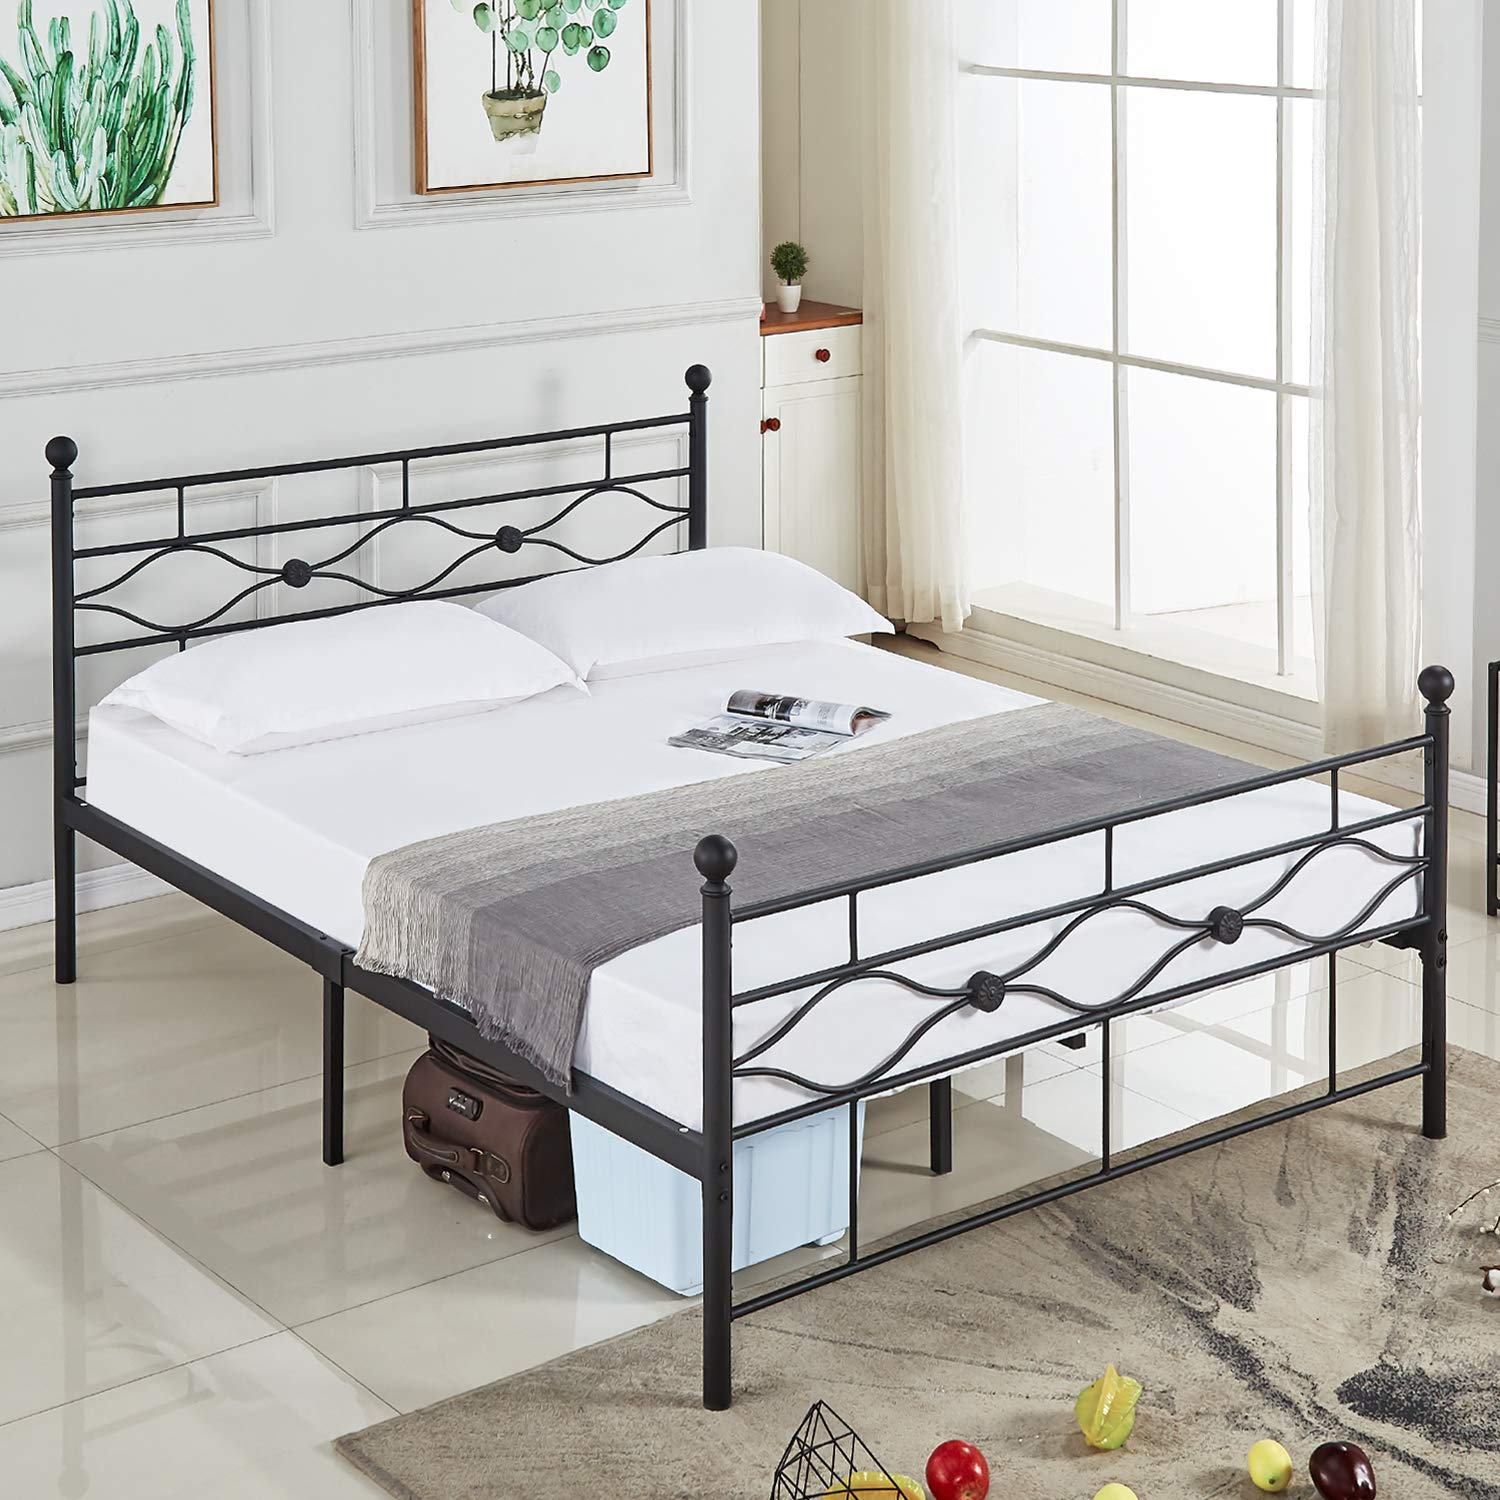 DIKAPA Full Size Bed Frame, Metal Platform Mattress Foundation Box Spring Replacement with Headboard .Five Years Warranty